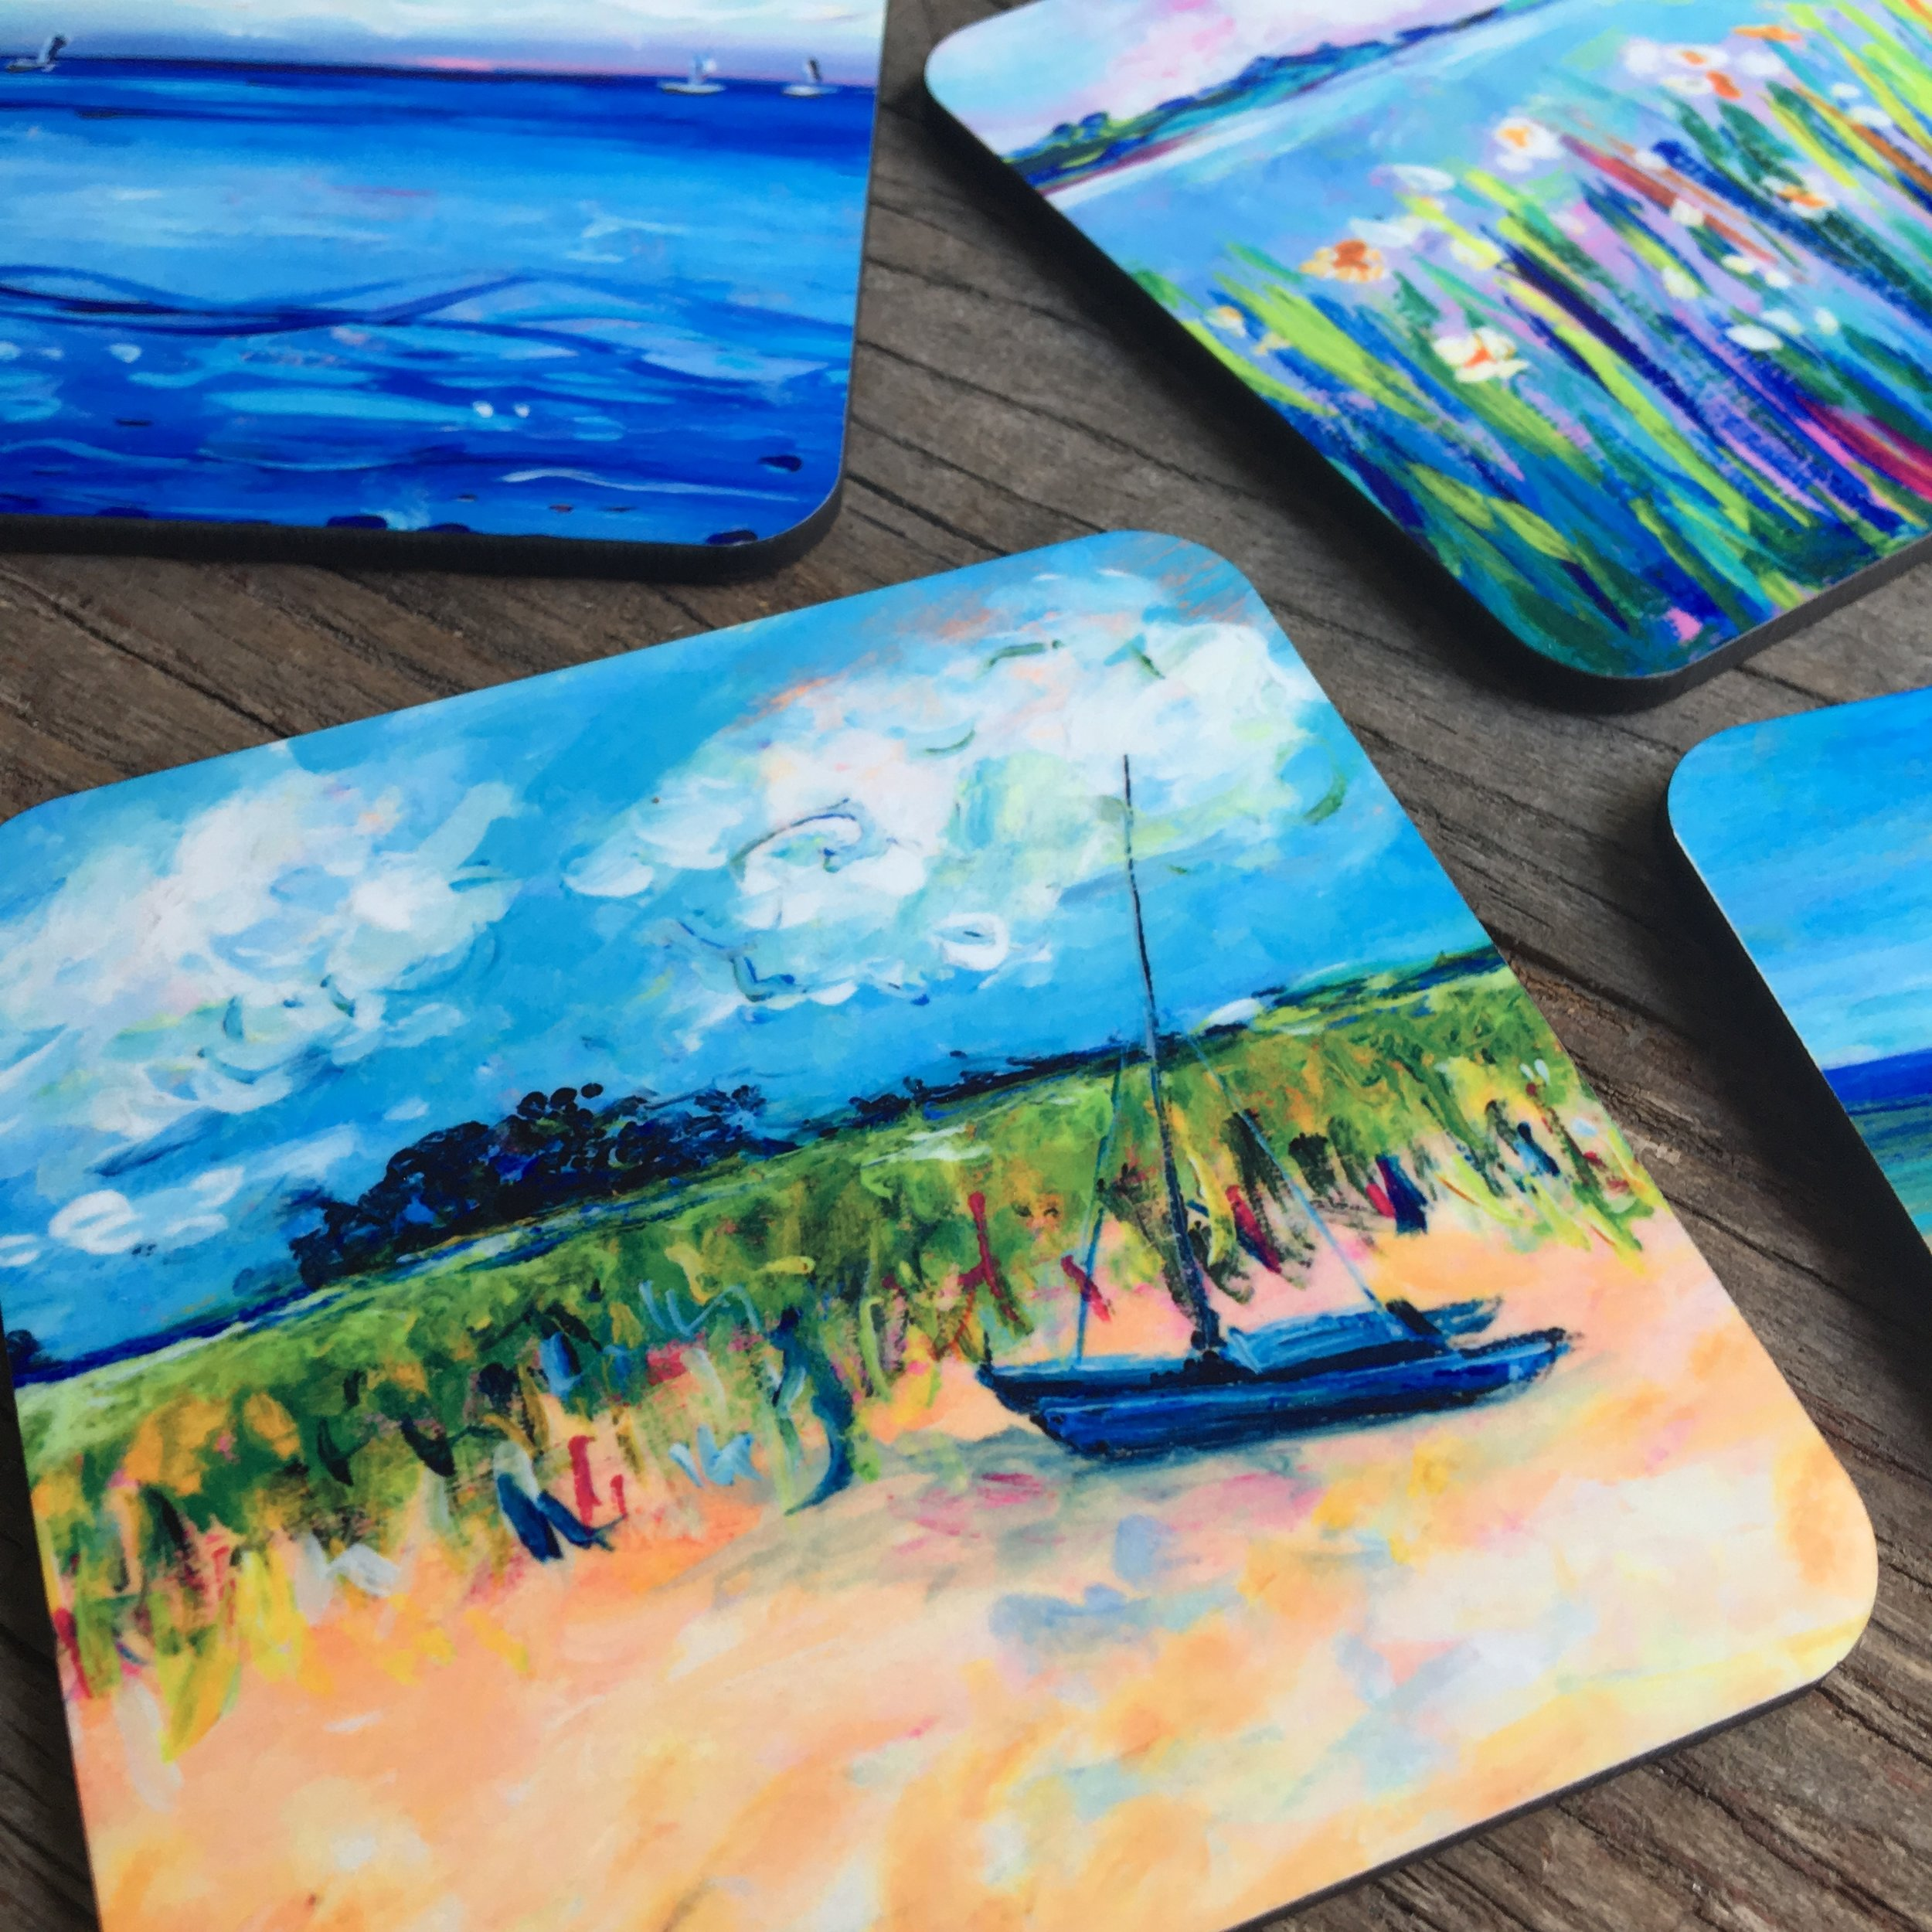 Products - Bring the feeling of the lake home with these high quality accessories. Browse our product collection all featuring Michelle Brunner's unique and colorful artwork.